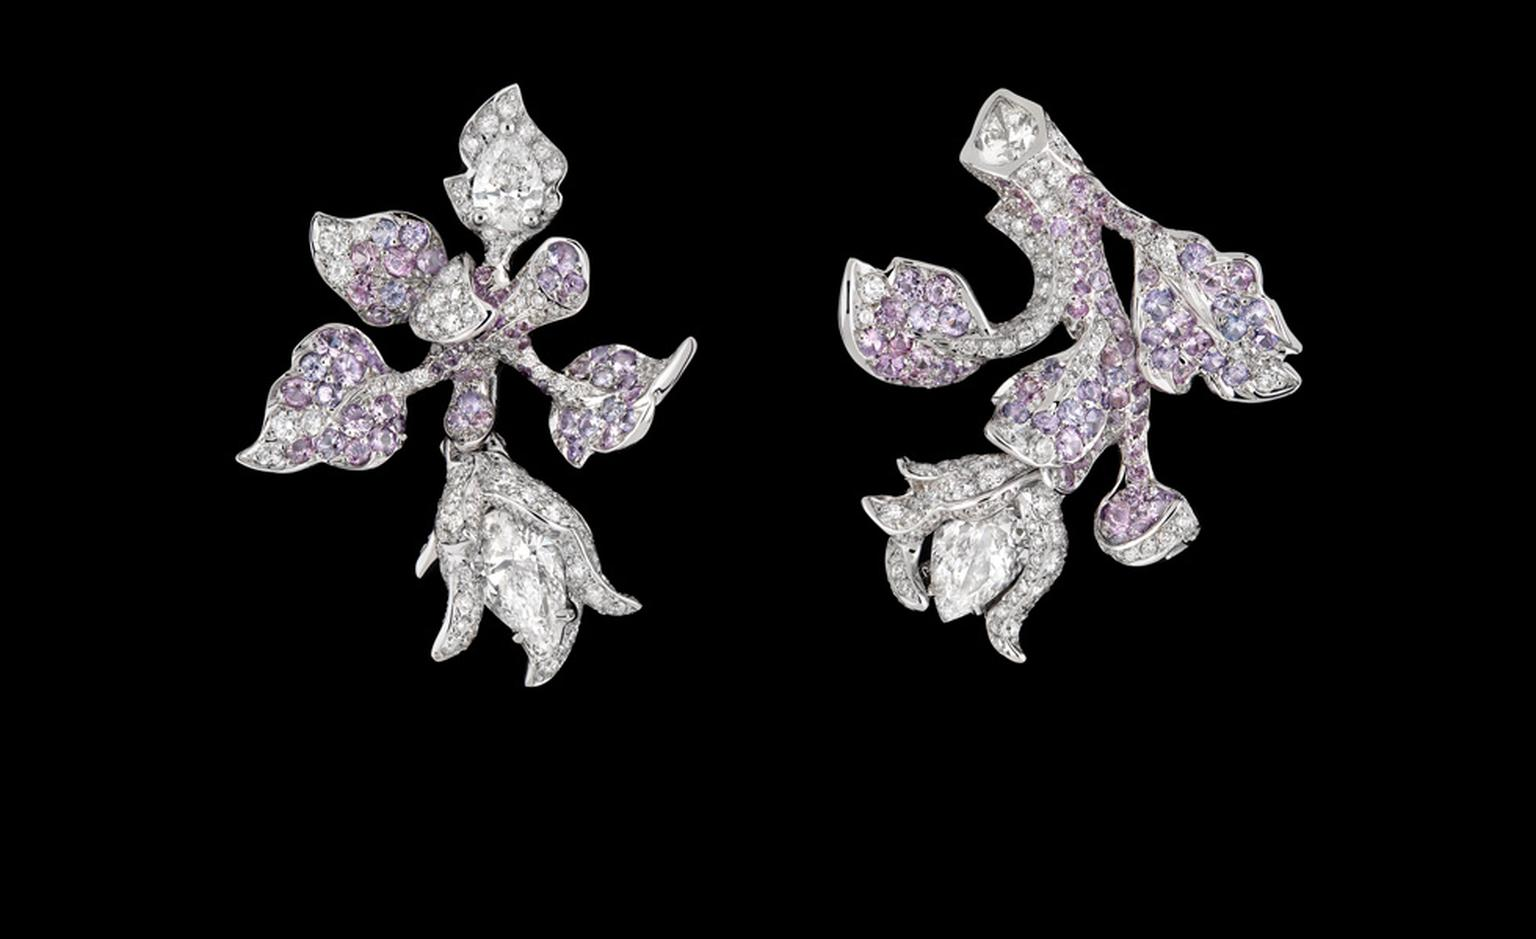 DIOR FINE JEWELLERY LE BAL DES ROSES BAL ROMANTIQUE EARRINGS WHITE GOLD, DIAMONDS AND MAUVE SAPPHIRES